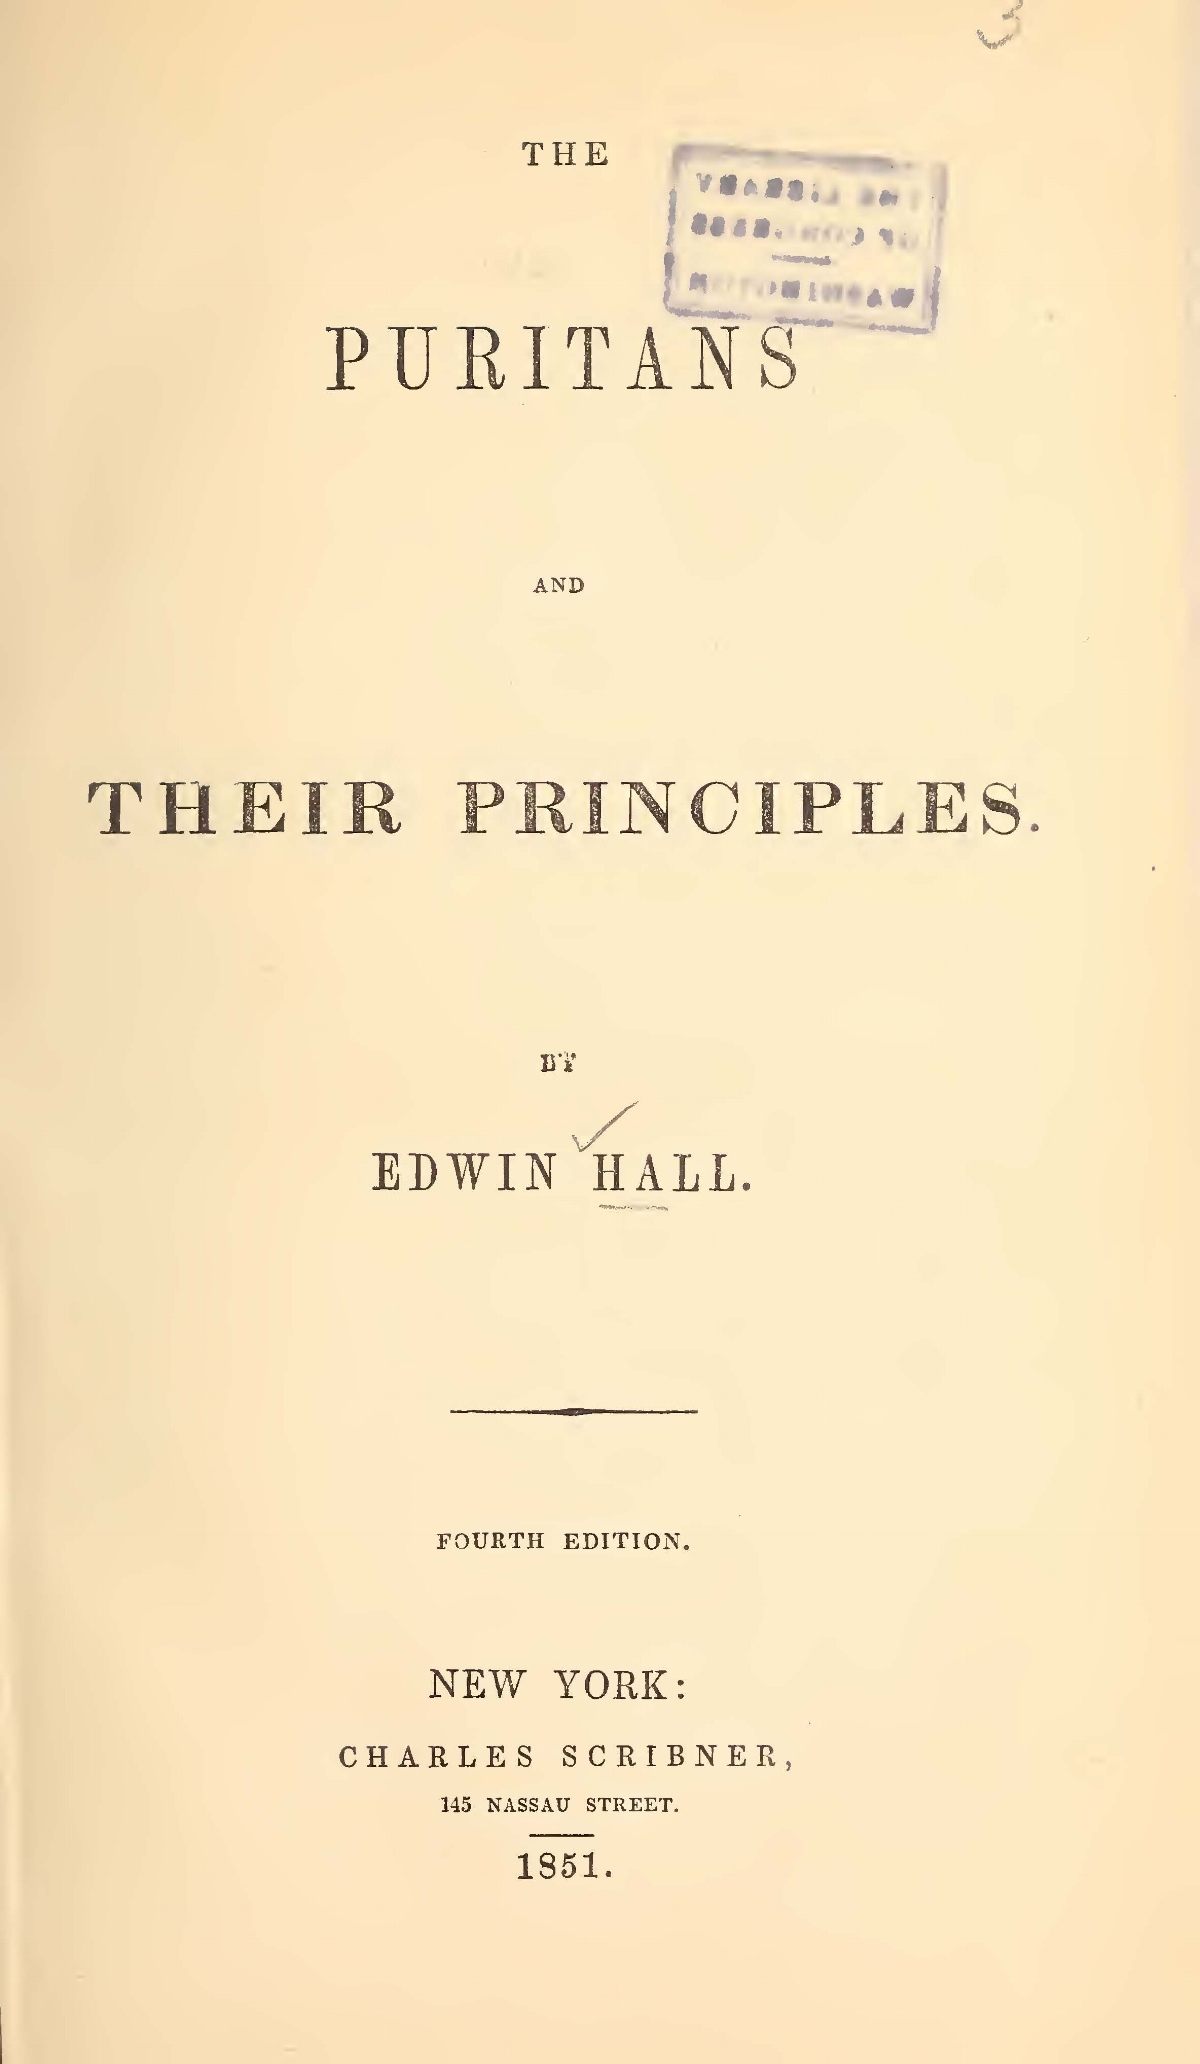 Hall, Edwin, Sr., The Puritans and Their Principles Title Page.jpg